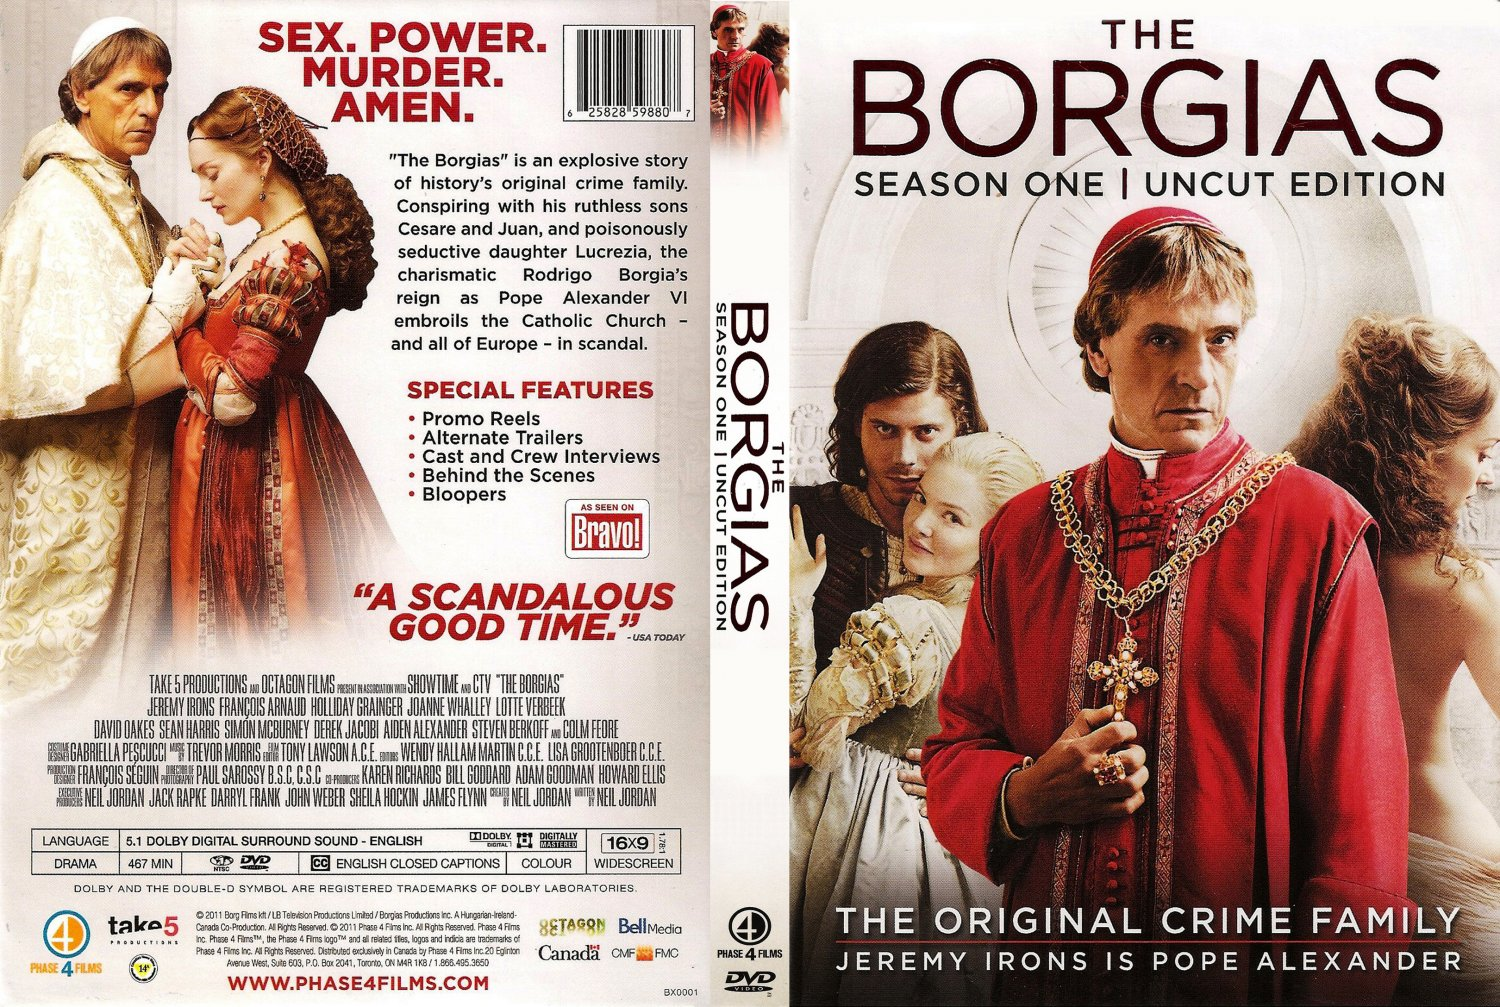 The Borgias The Final Season DVD The Borgias The Final Season DVD Review